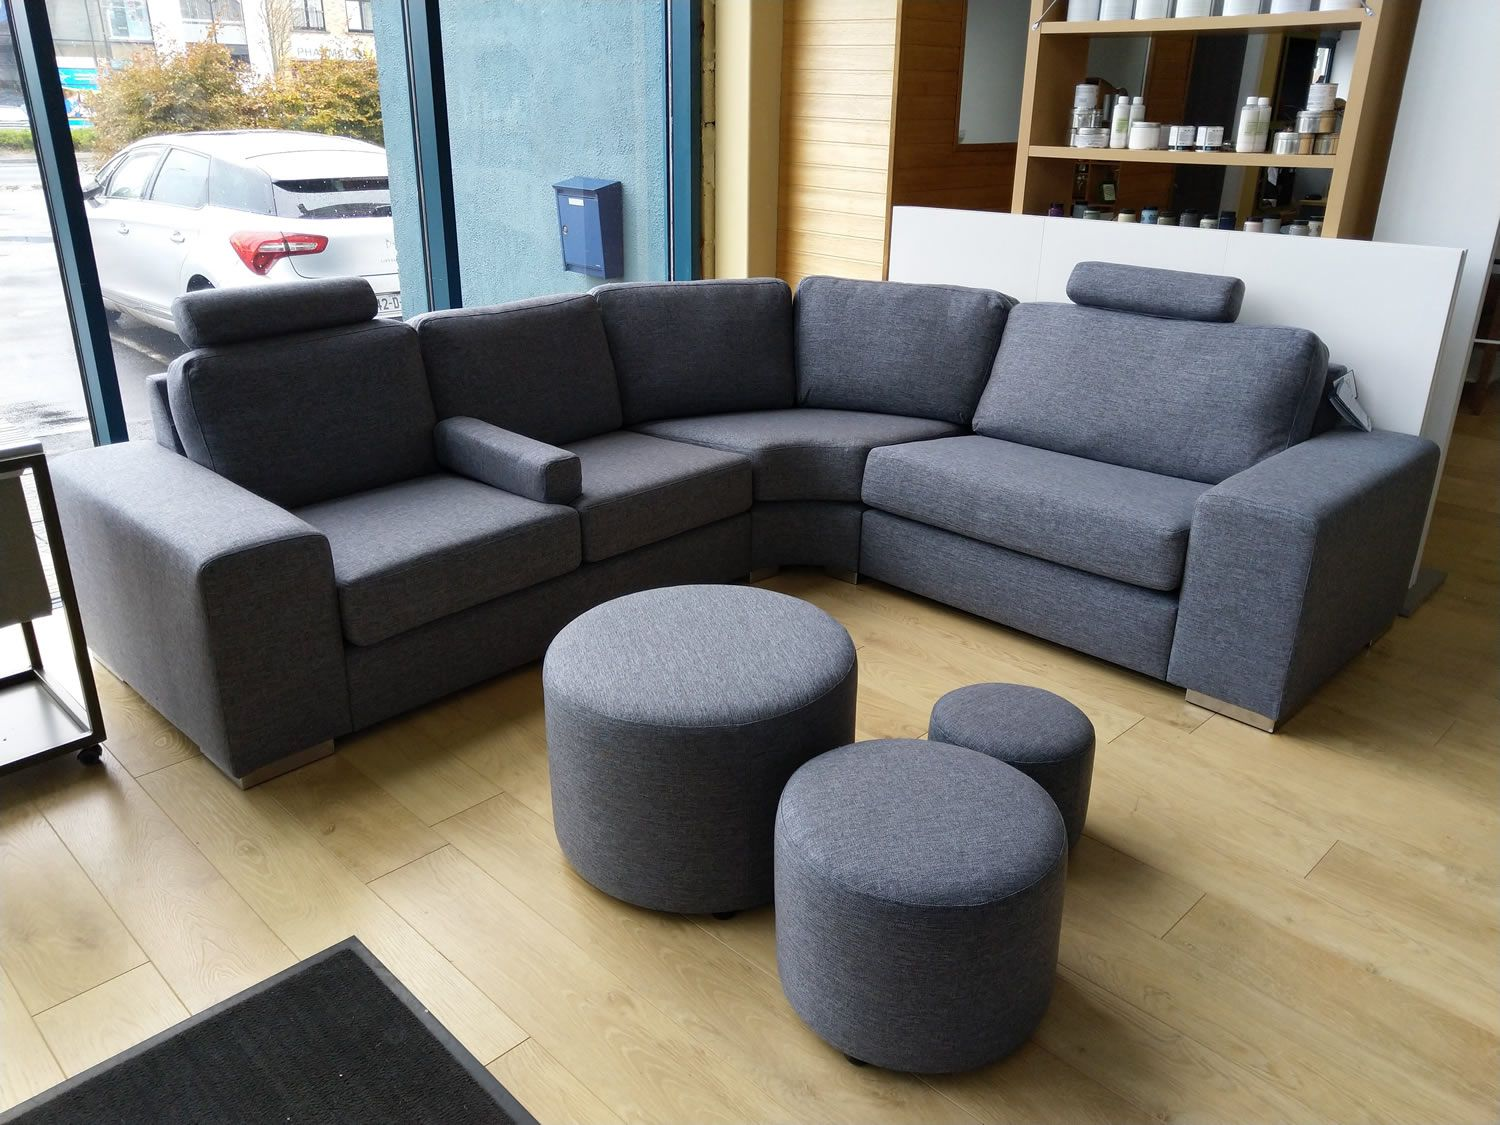 Fantastic Modular Sofa Available In Dozens Of Fabrics And Combinations Sofas Quality Furnityour Value Modular Sofa Sofa Home Decor